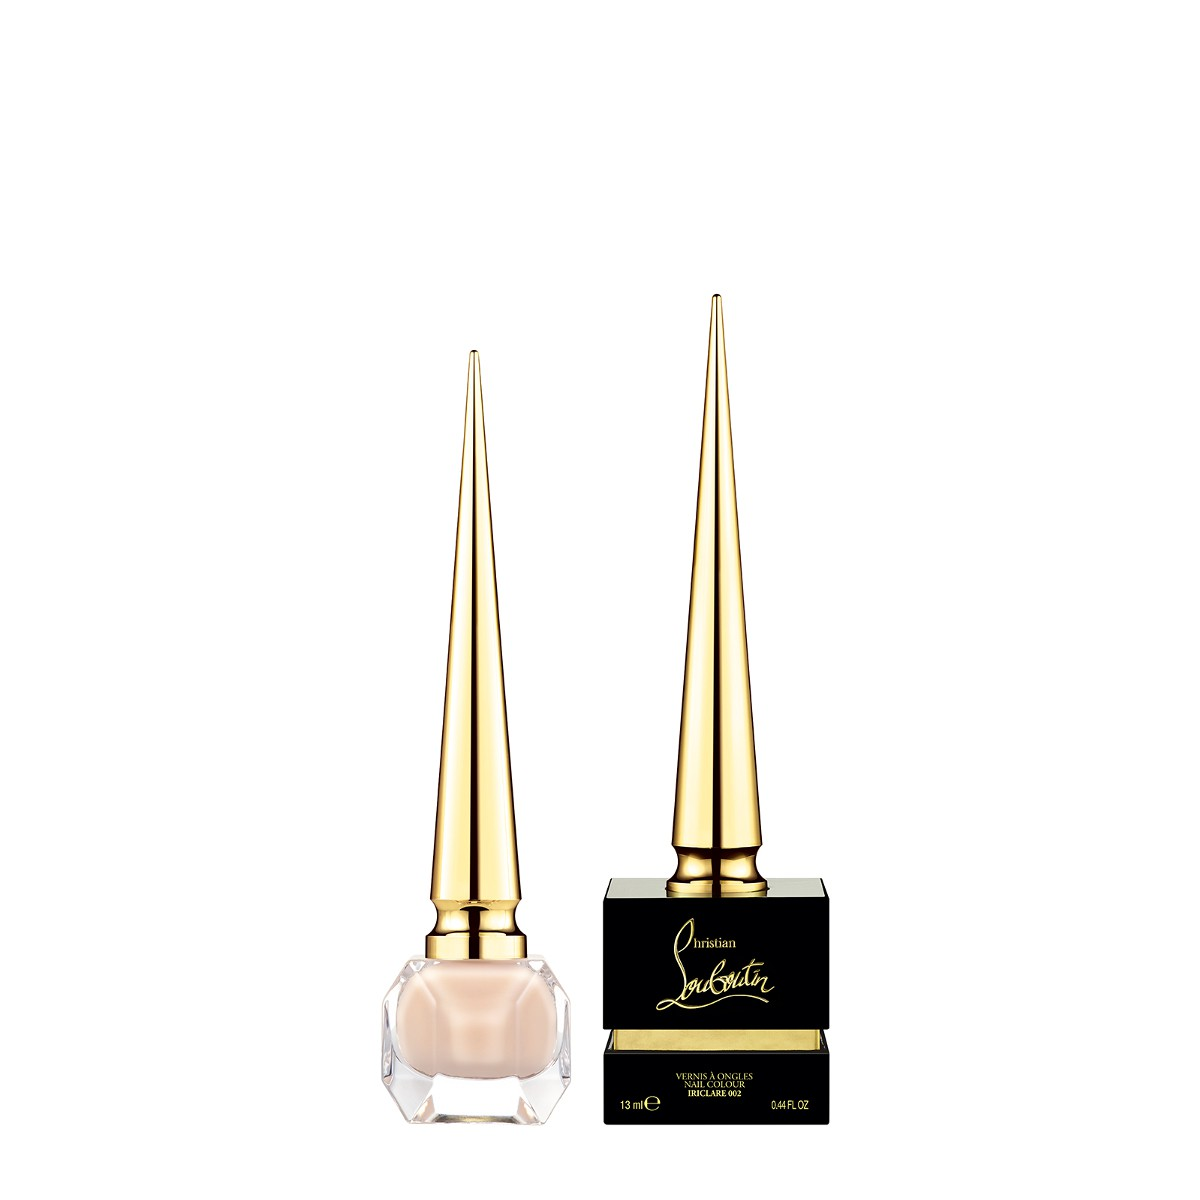 化妆品 - Cl Nail Color (Sans Valeur) - Christian Louboutin